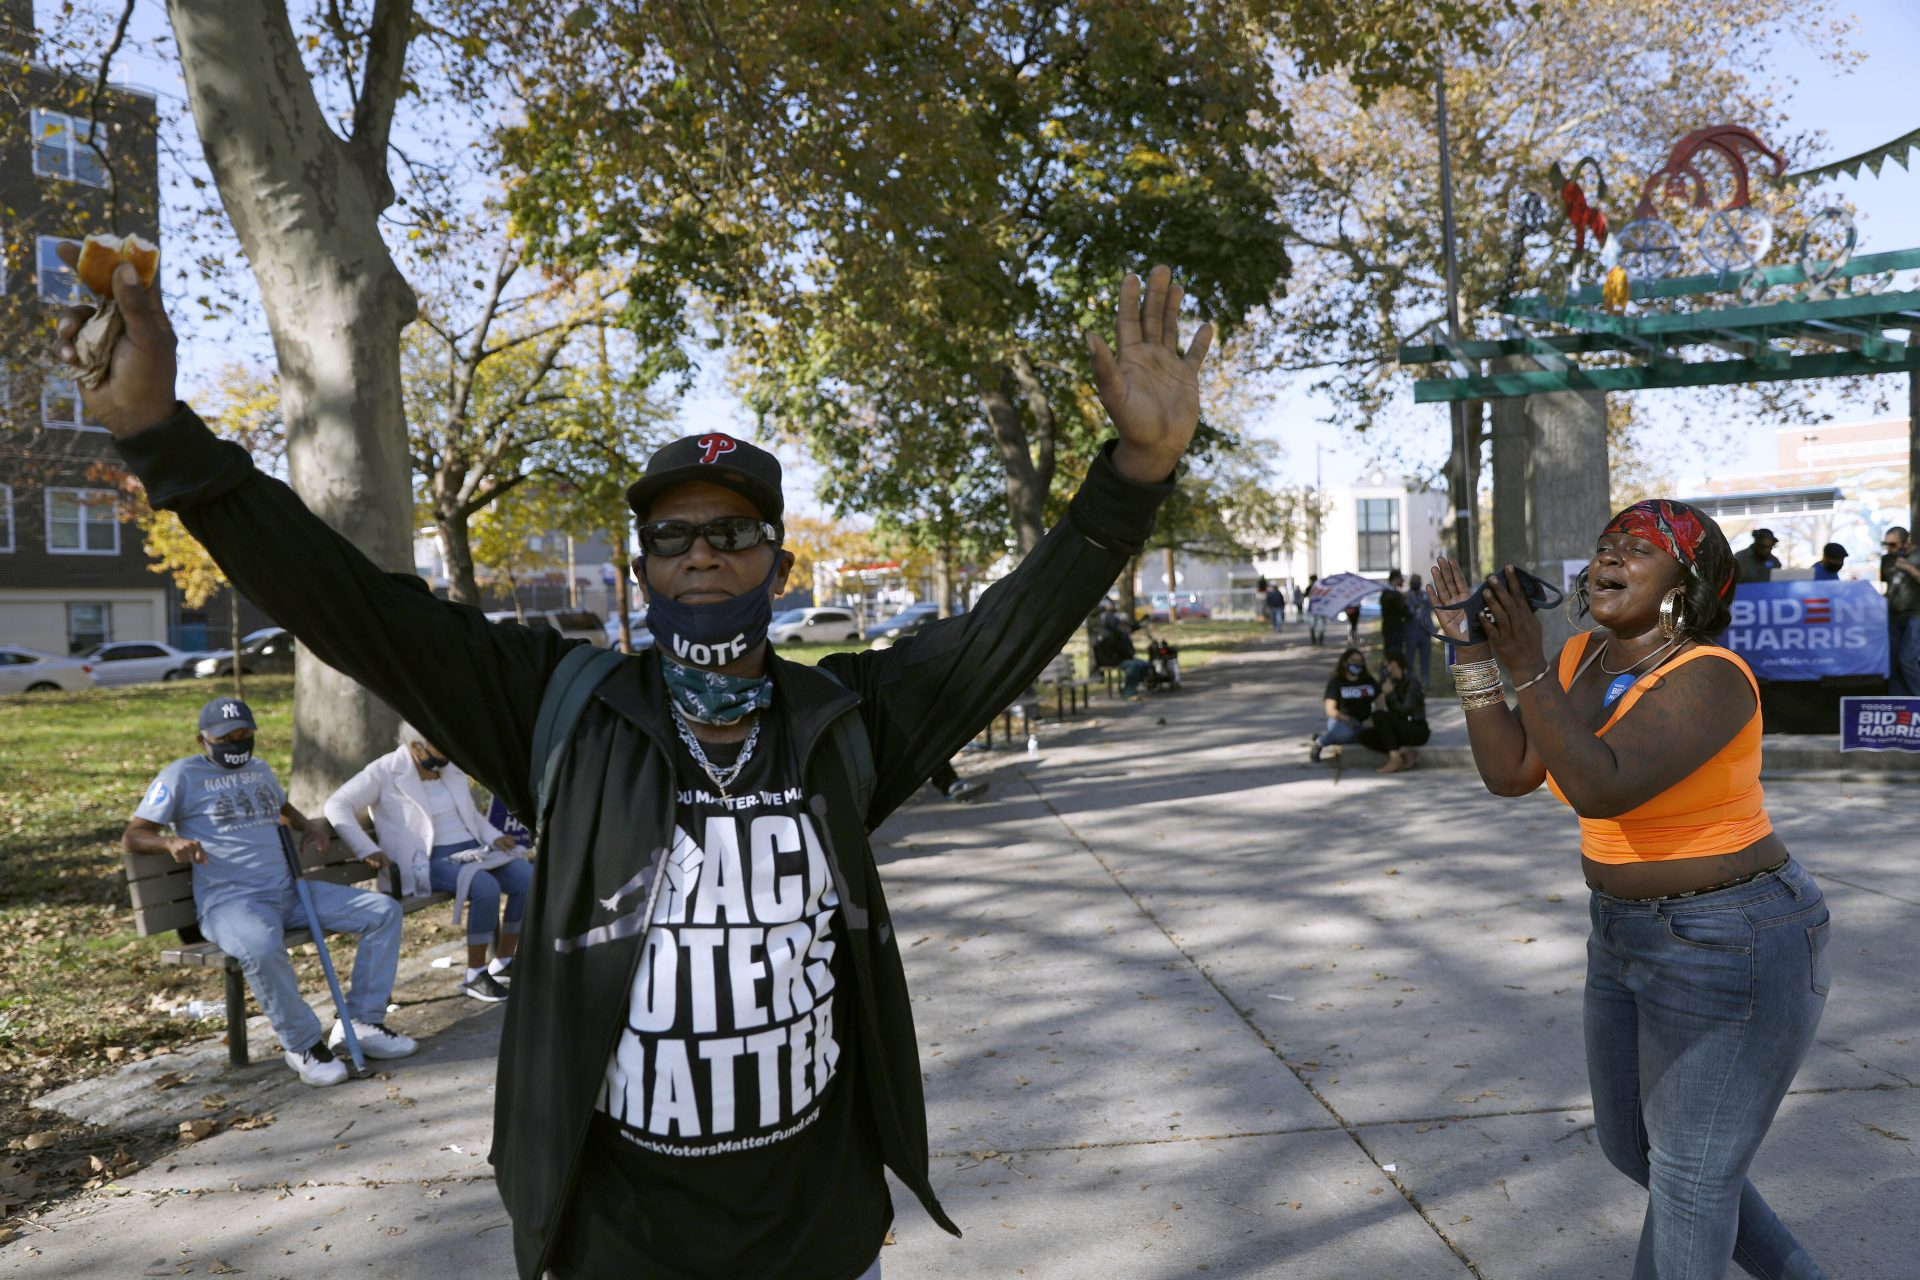 """A man wears a shirt that says, """"Black voters matter,"""" while dancing, Sunday, Nov. 8, 2020, in Fairhill Suare Park in Philadelphia, to celebrate after Democrat Joe Biden defeated President Donald Trump to become 46th president of the United States."""